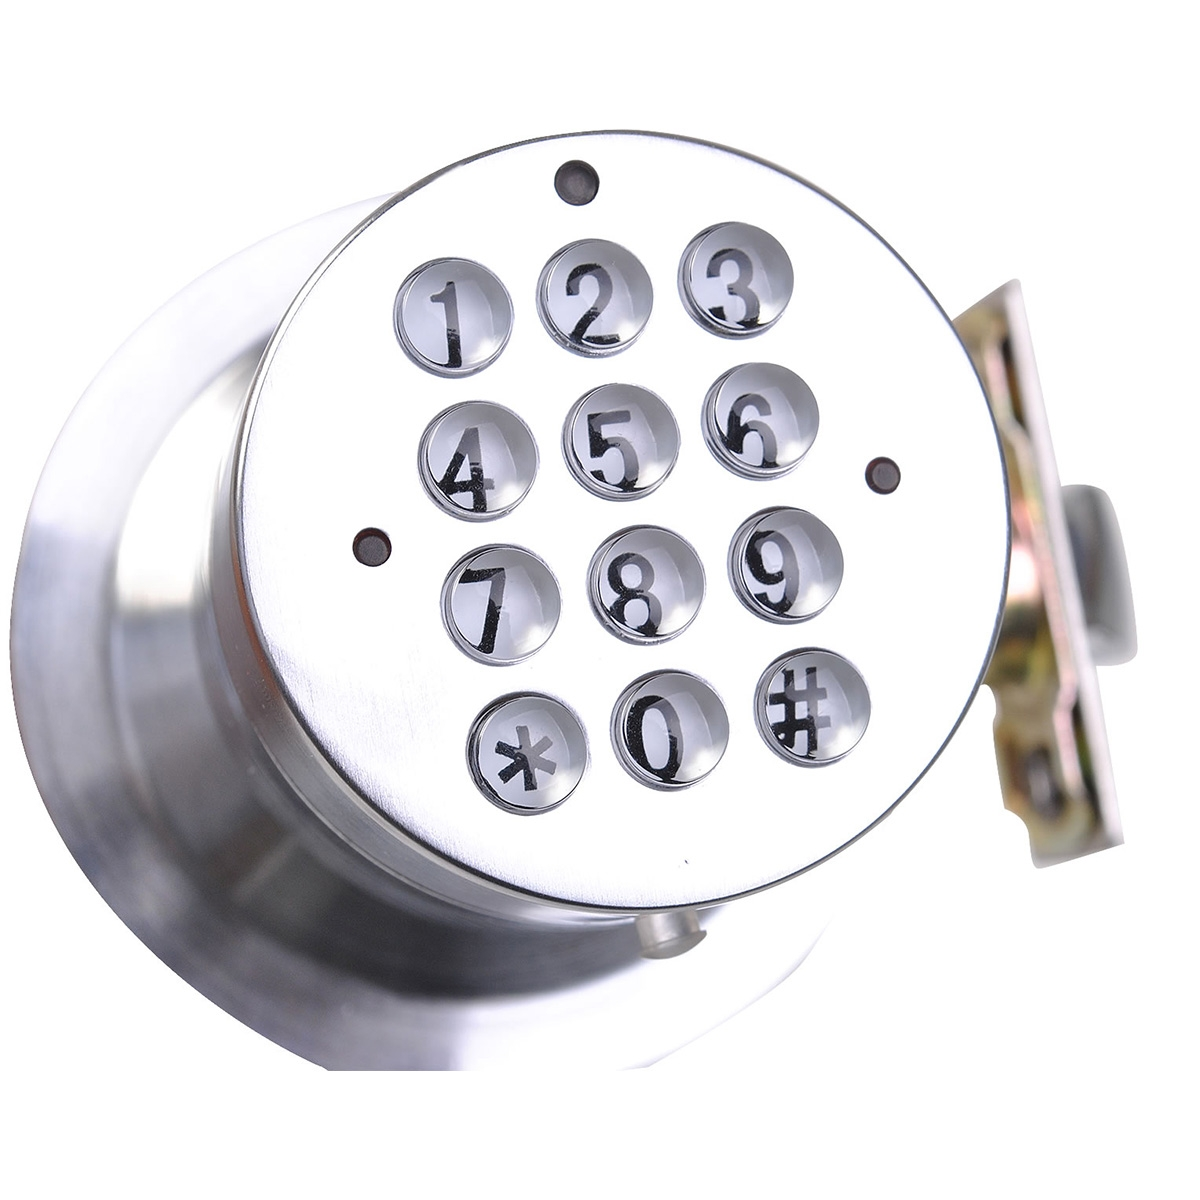 Interior Door Knob With Keypad